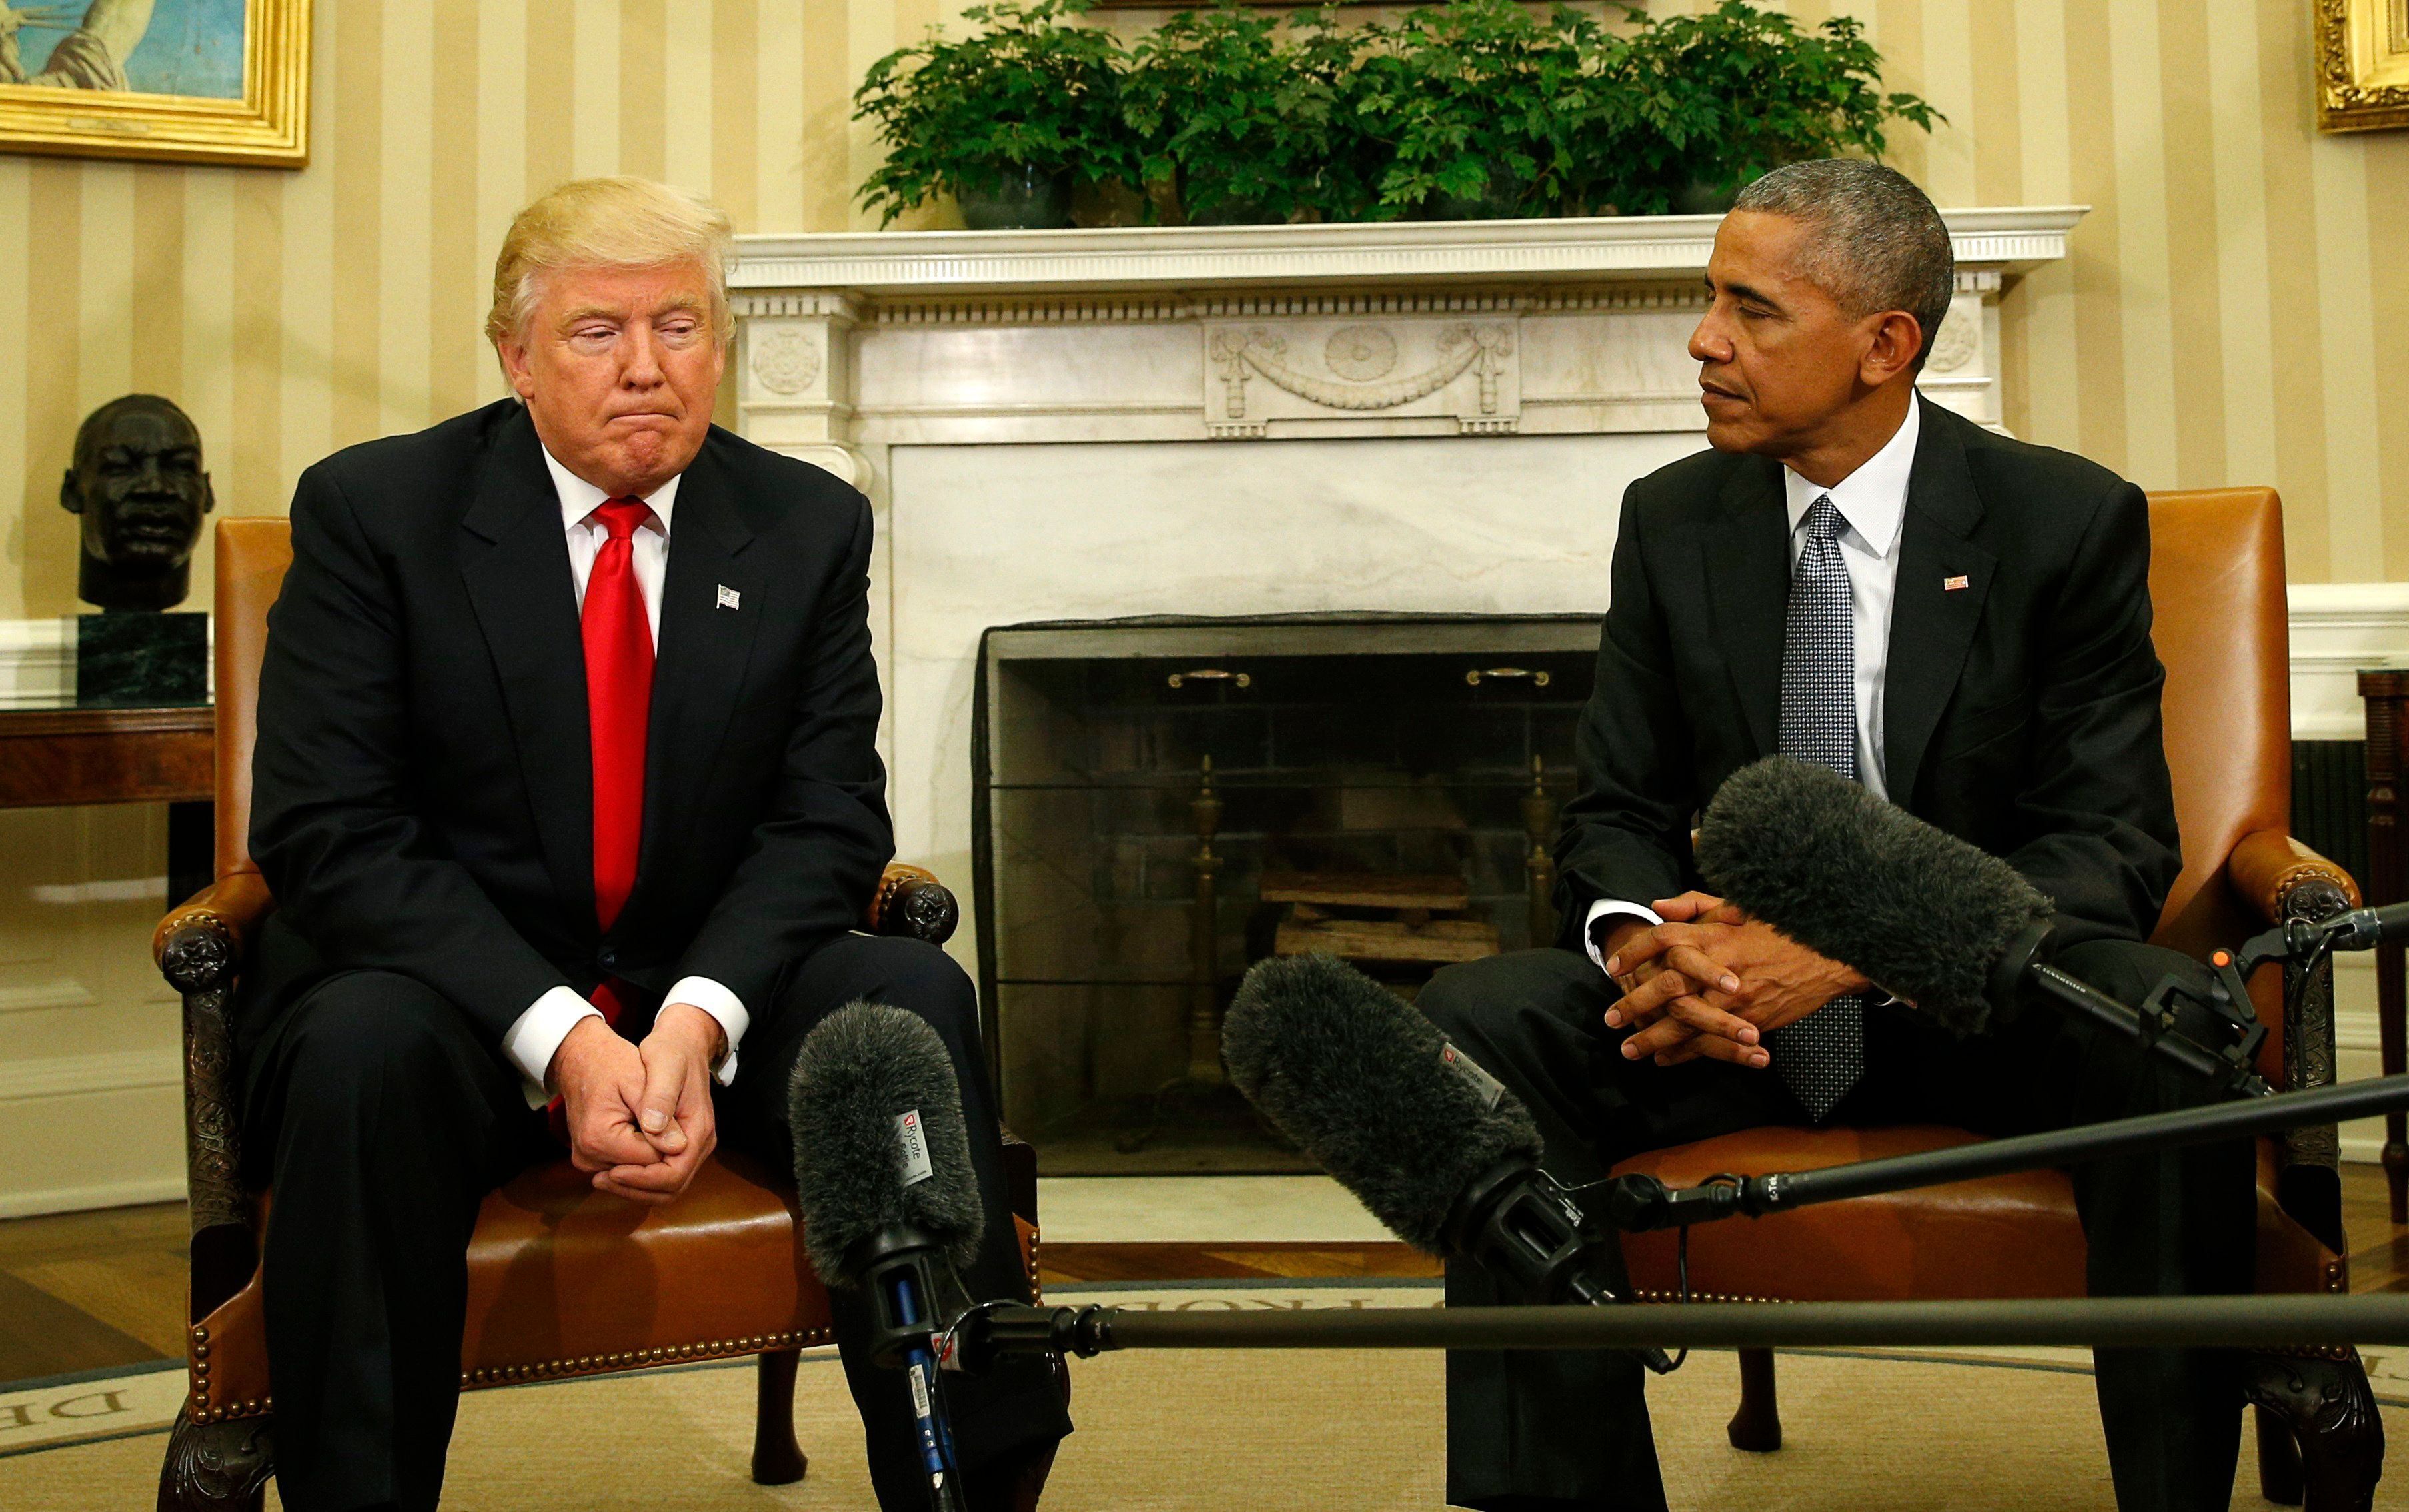 Trump accused Obama of inaction against Russian influence in the elections